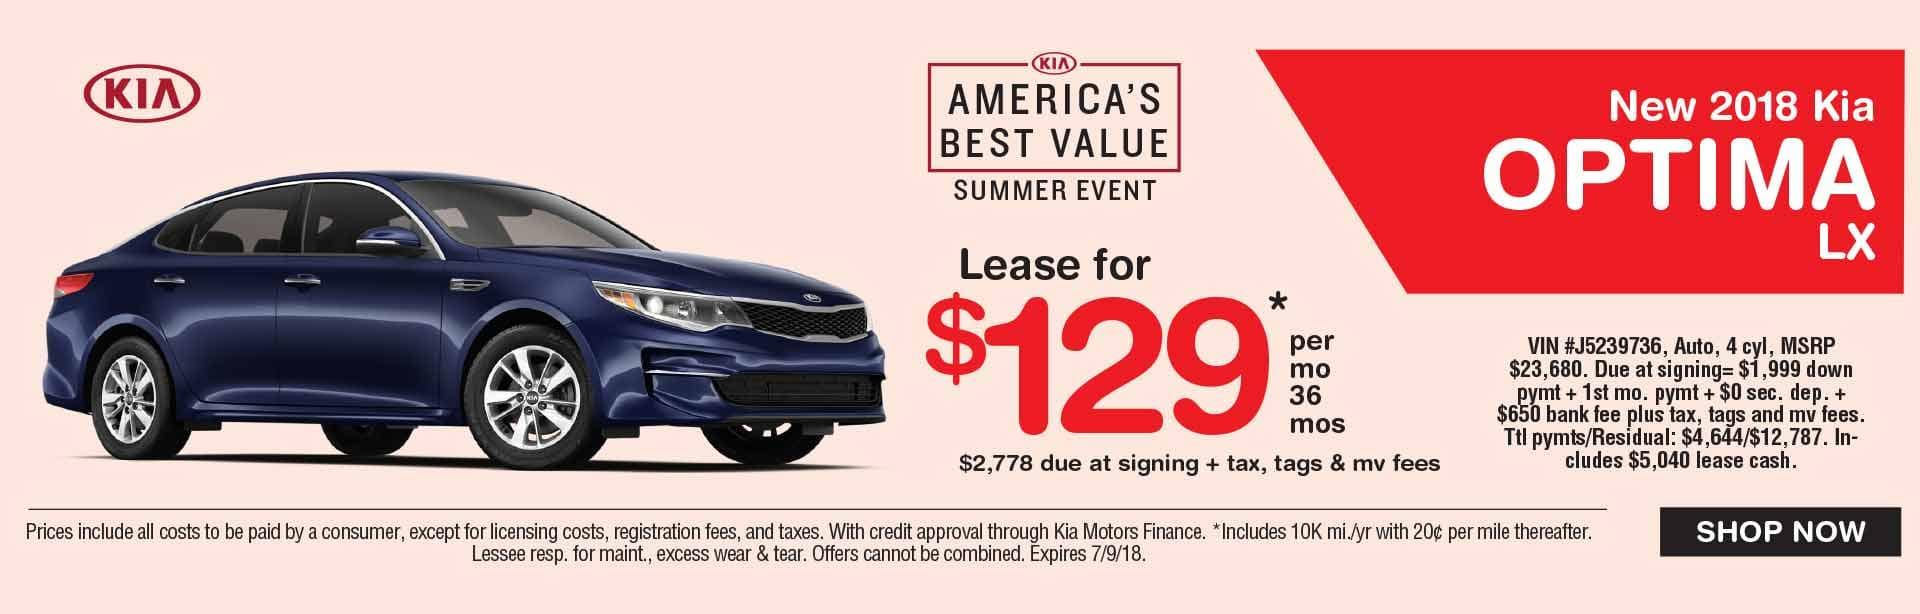 Global Kia Optima Lease Special